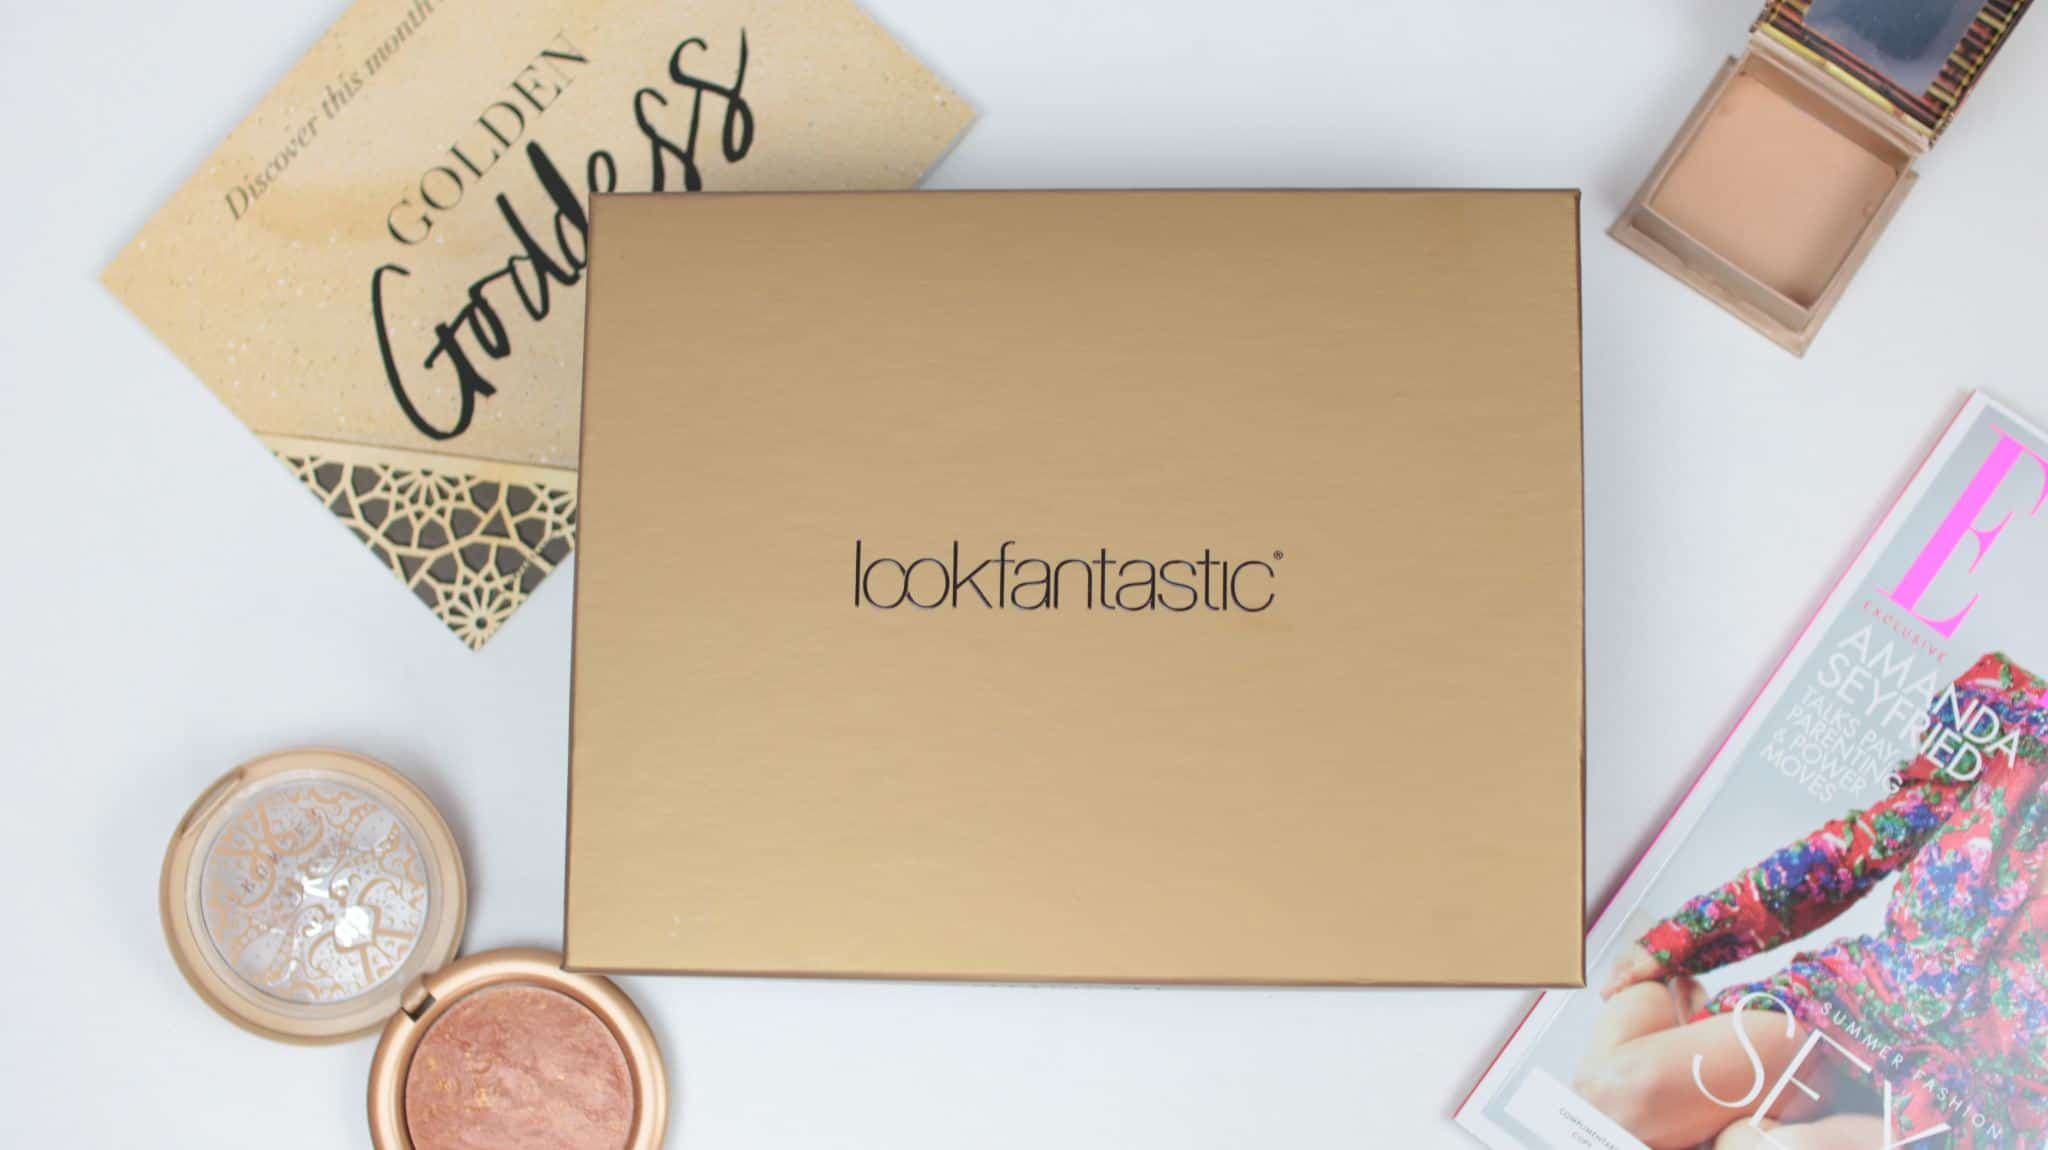 Lookfantastic beauty box July 2018